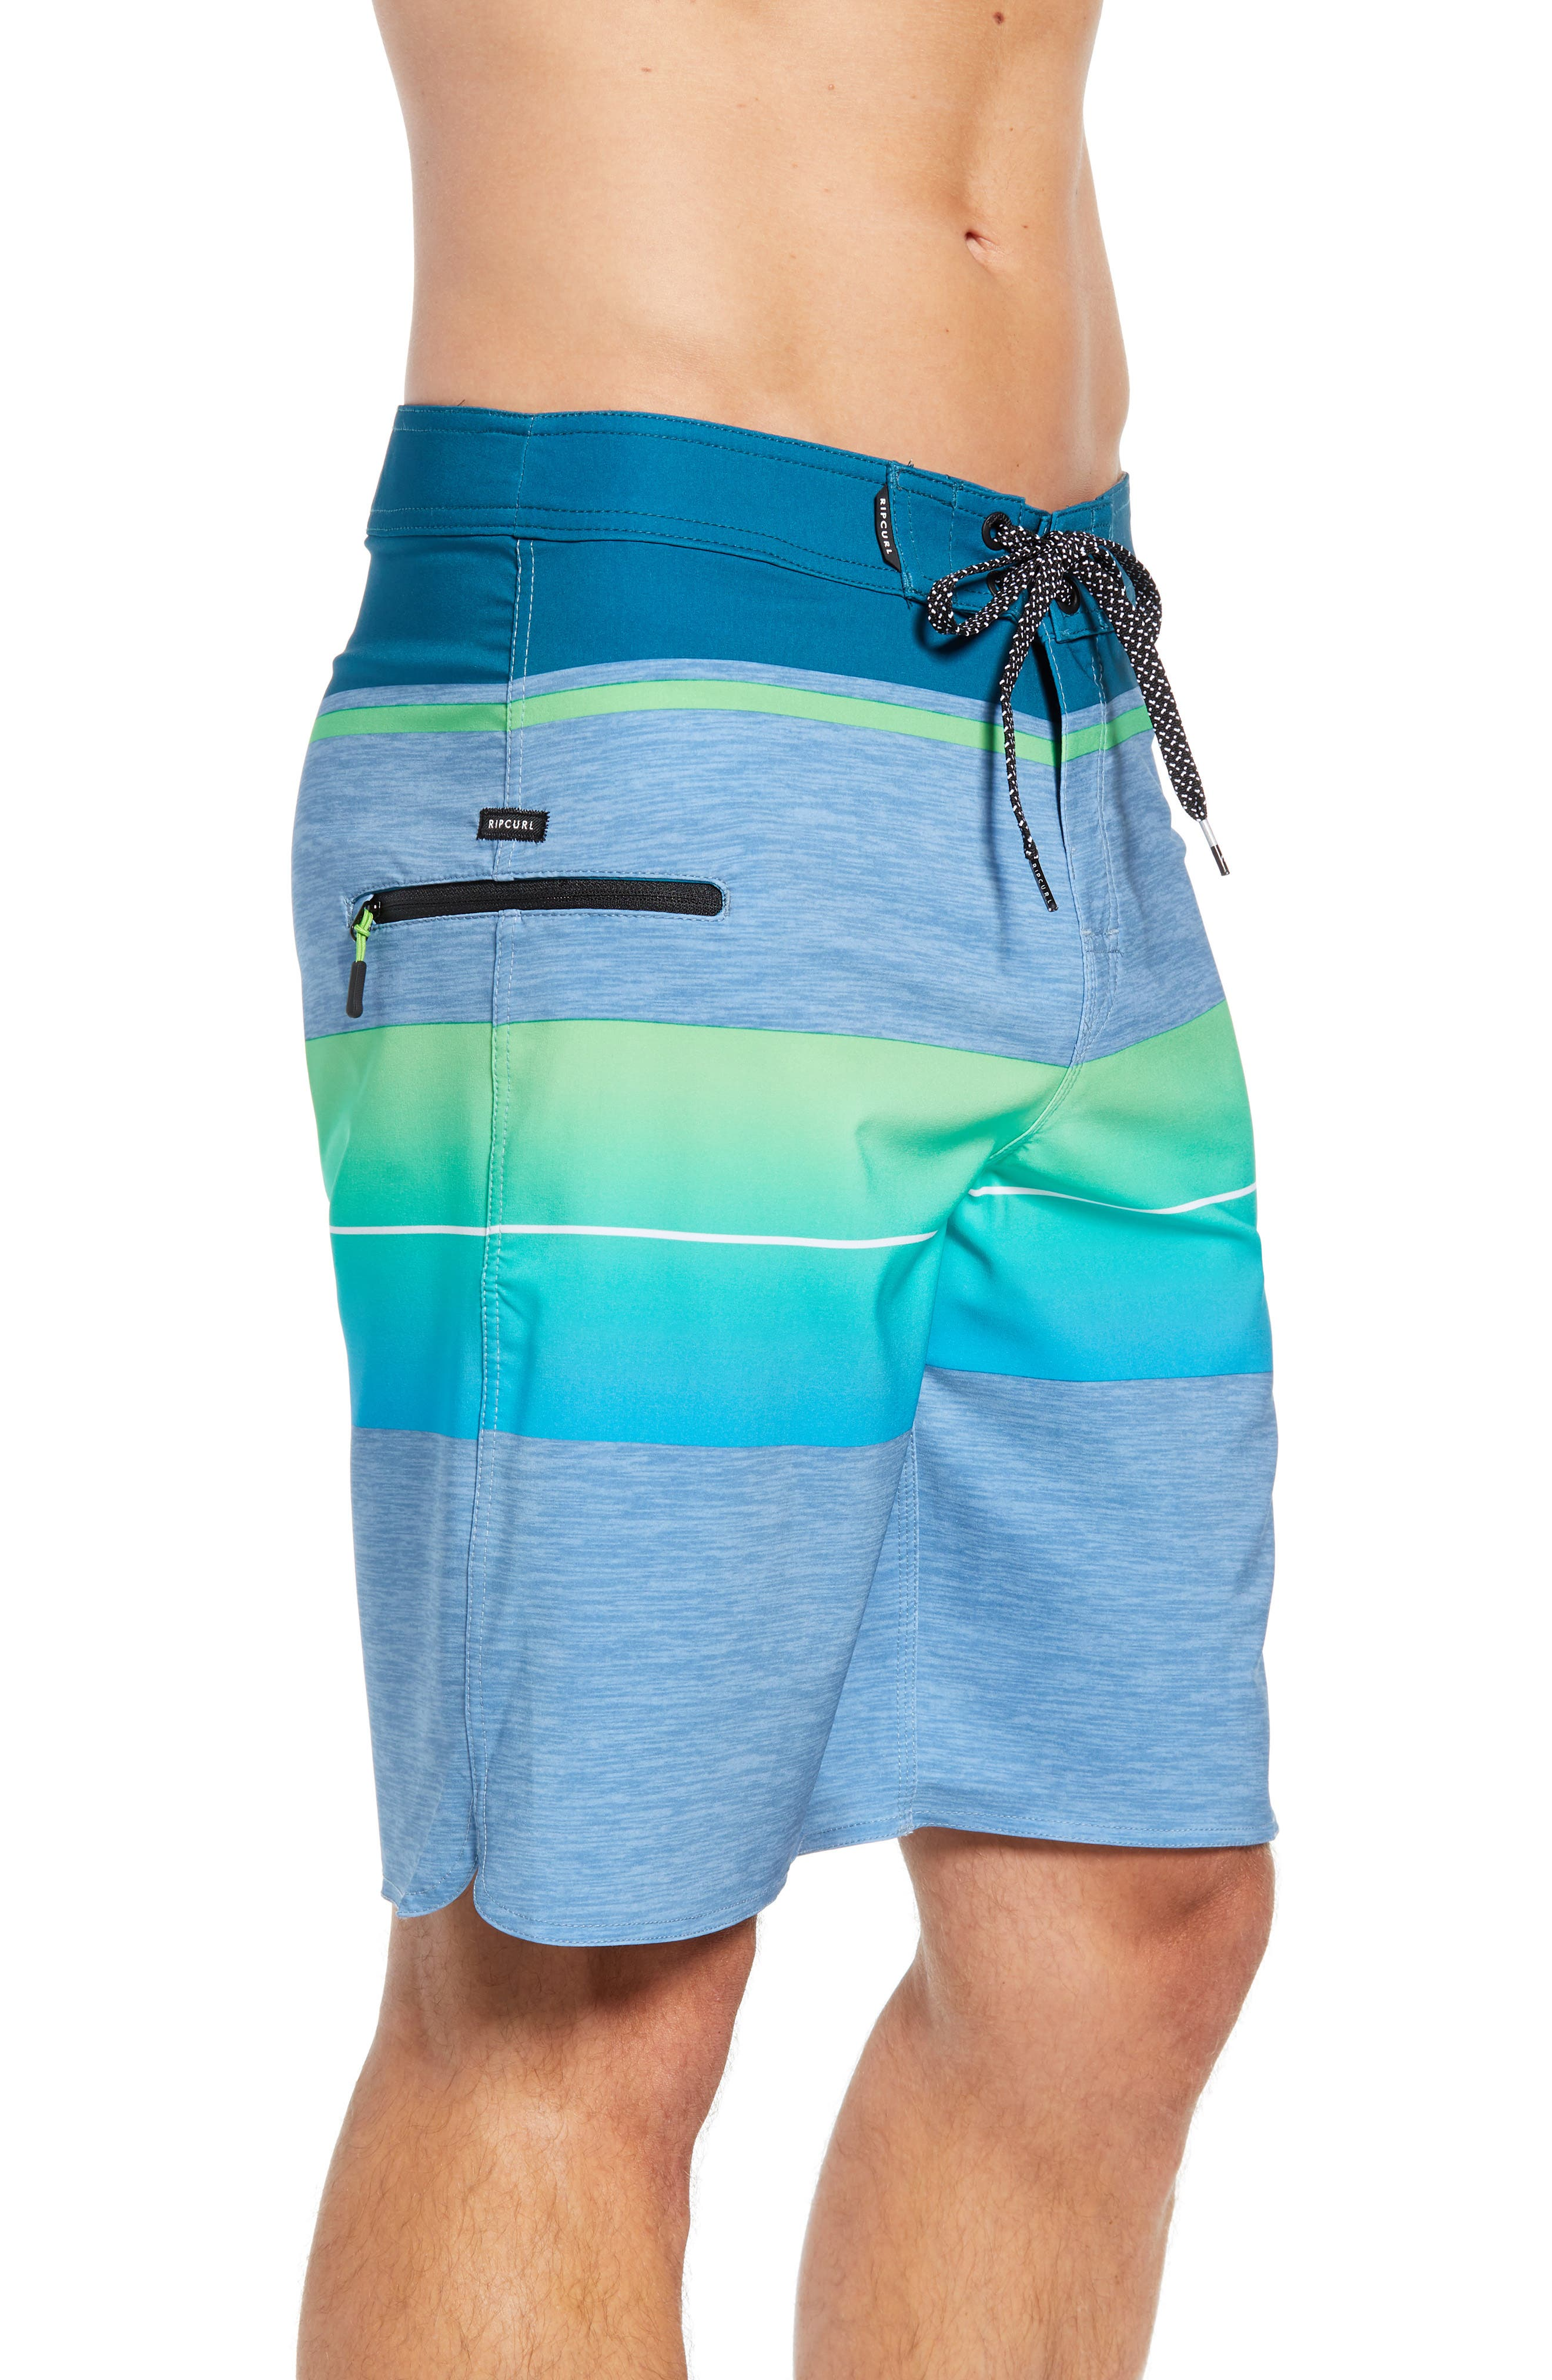 Mirage Eclipse Board Shorts,                             Alternate thumbnail 3, color,                             300